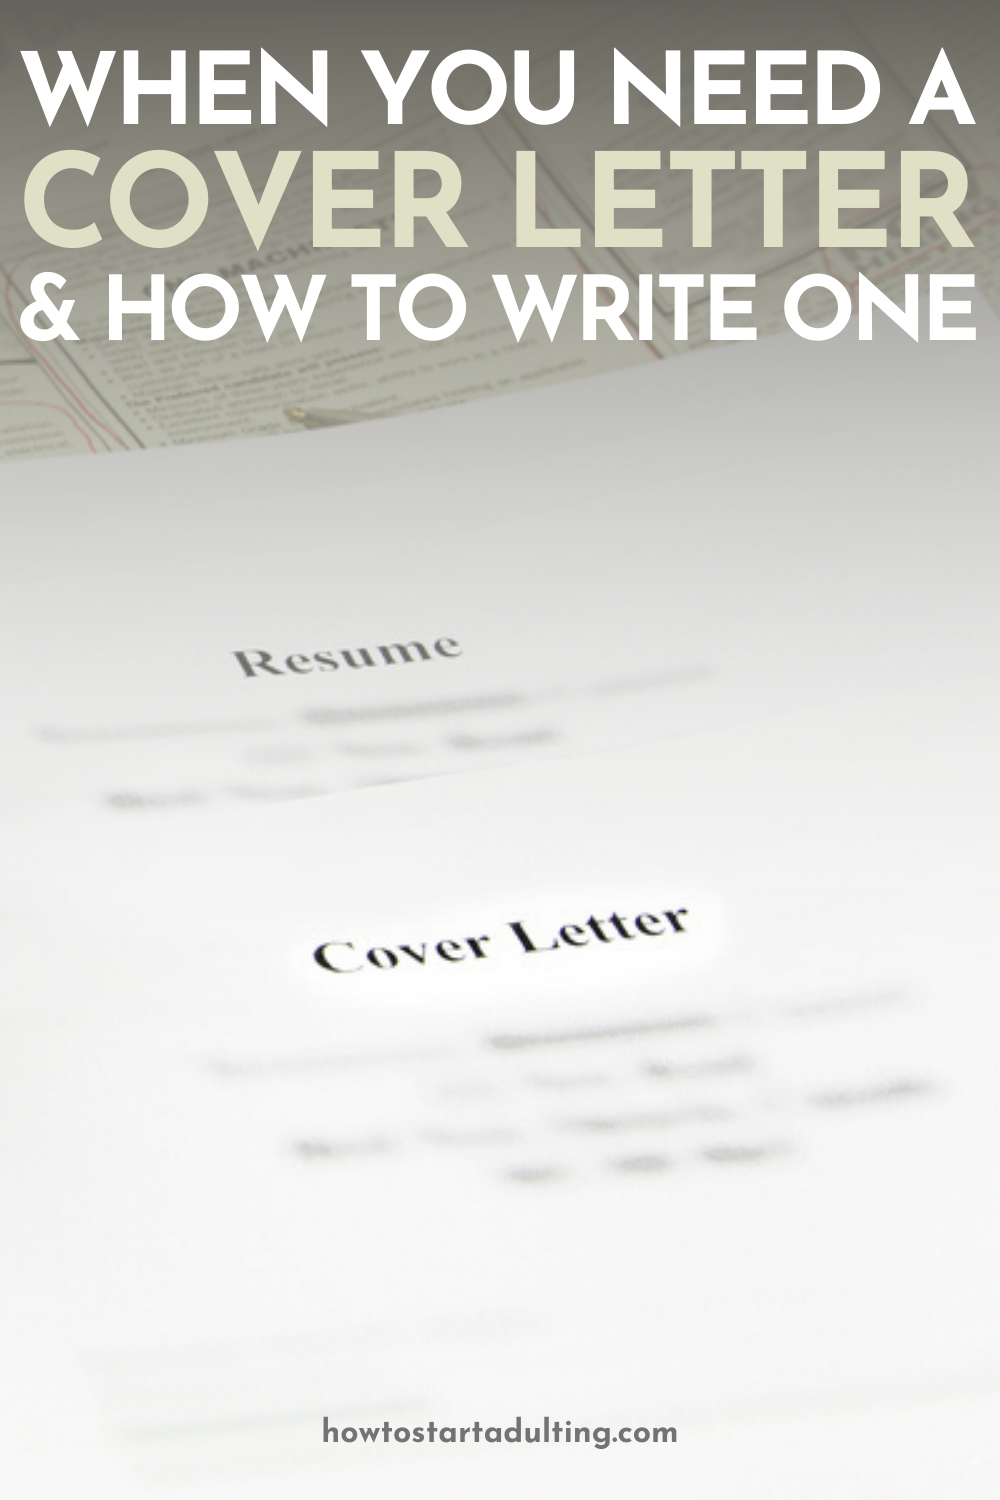 Here's When You Need A Cover Letter (And How To Write One) #jobtips #jobsearch #careertips #careeradvice #coverletter #resumetips